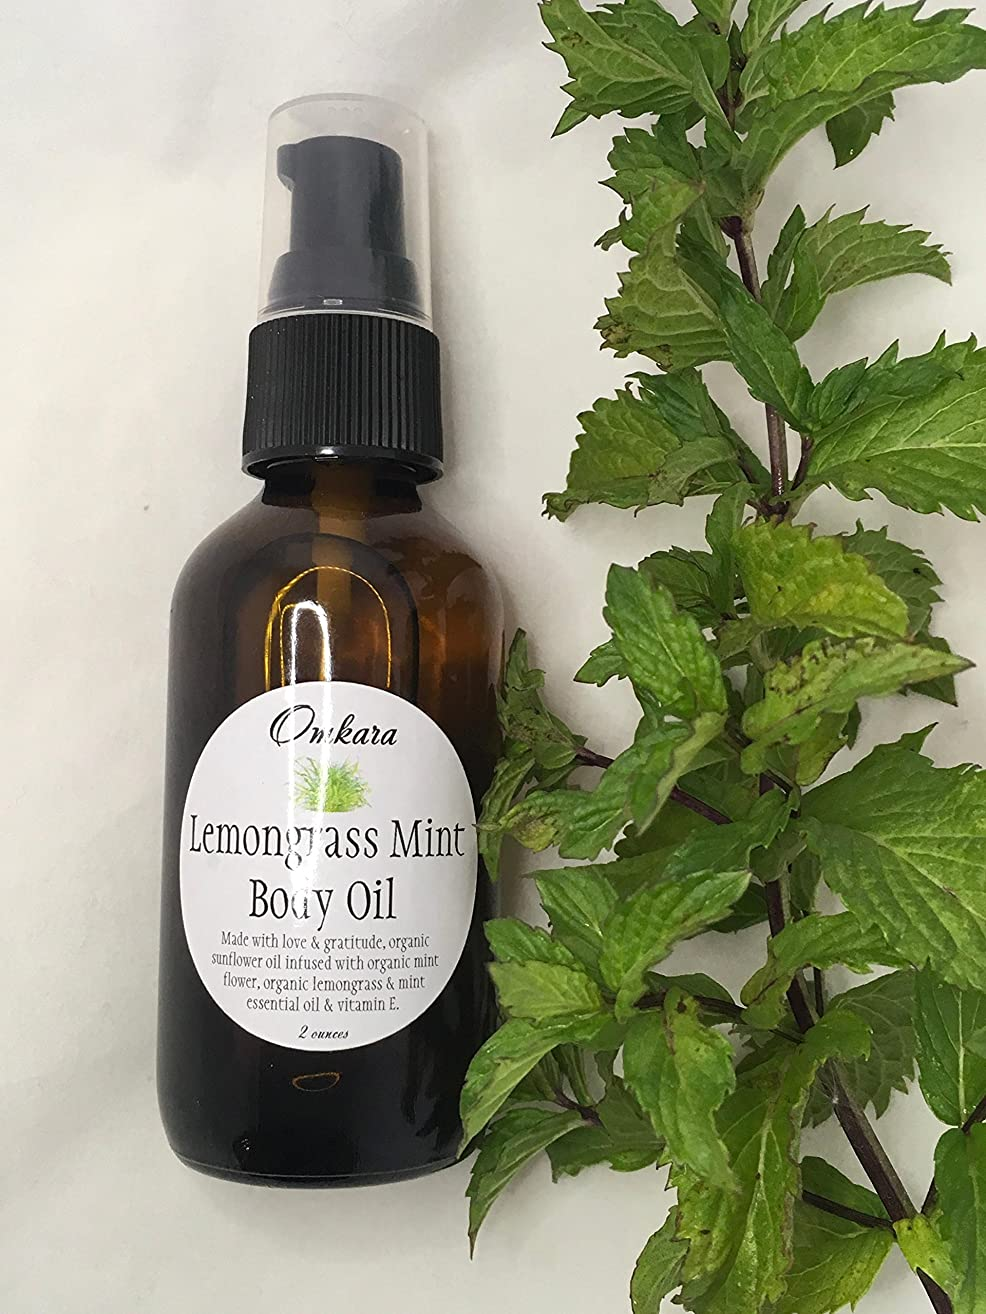 Lemongrass Mint Body Oil